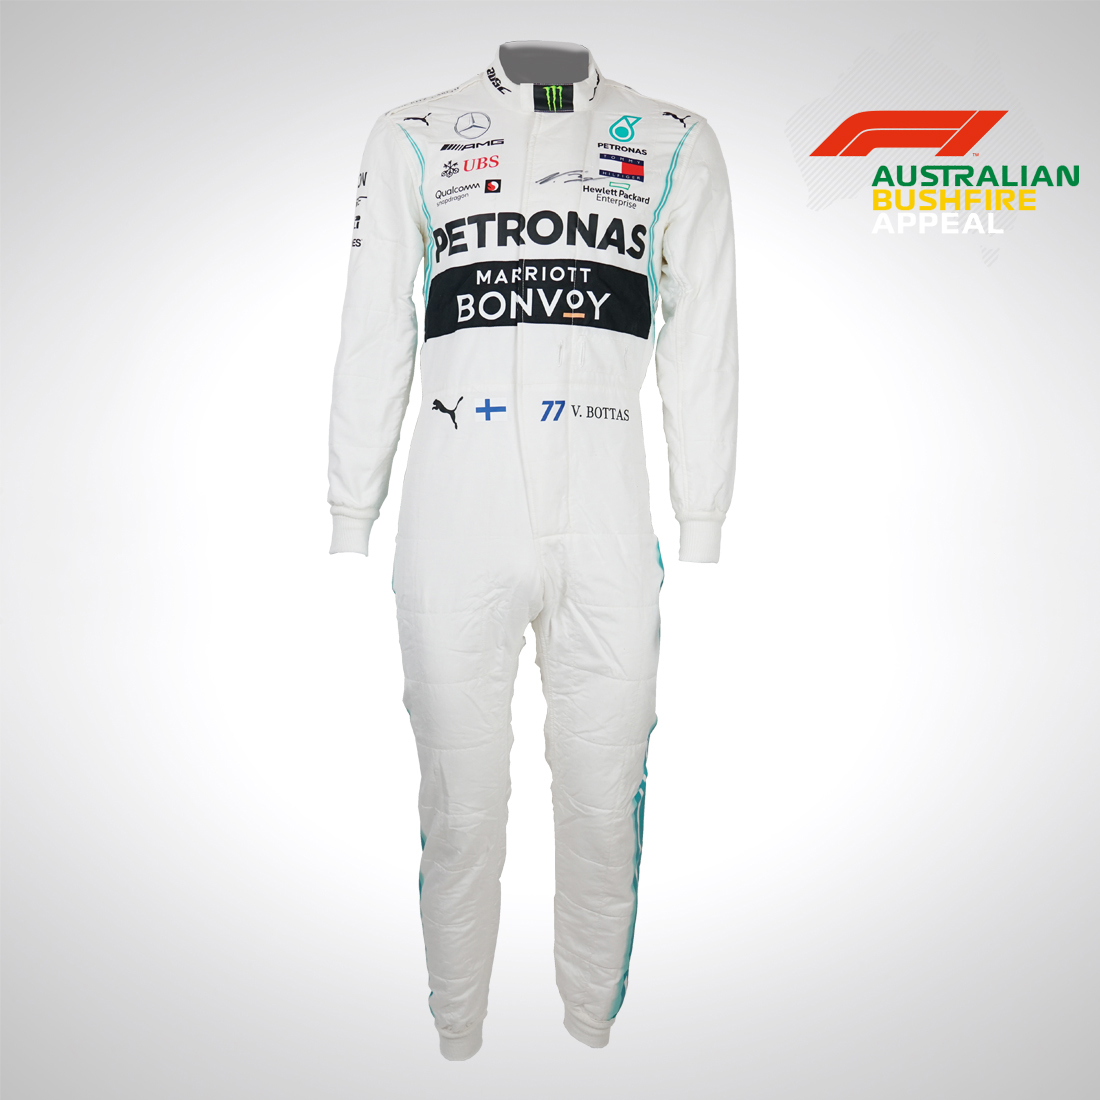 We're supporting the @F1 Australian Bush Fire Appeal!   👉 Signed @LewisHamilton race suit 👉 Signed @ValtteriBottas race suit   Bid and help those affected in the worst hit areas of Australia 👉 http://mb4.me/WW5VxiFL